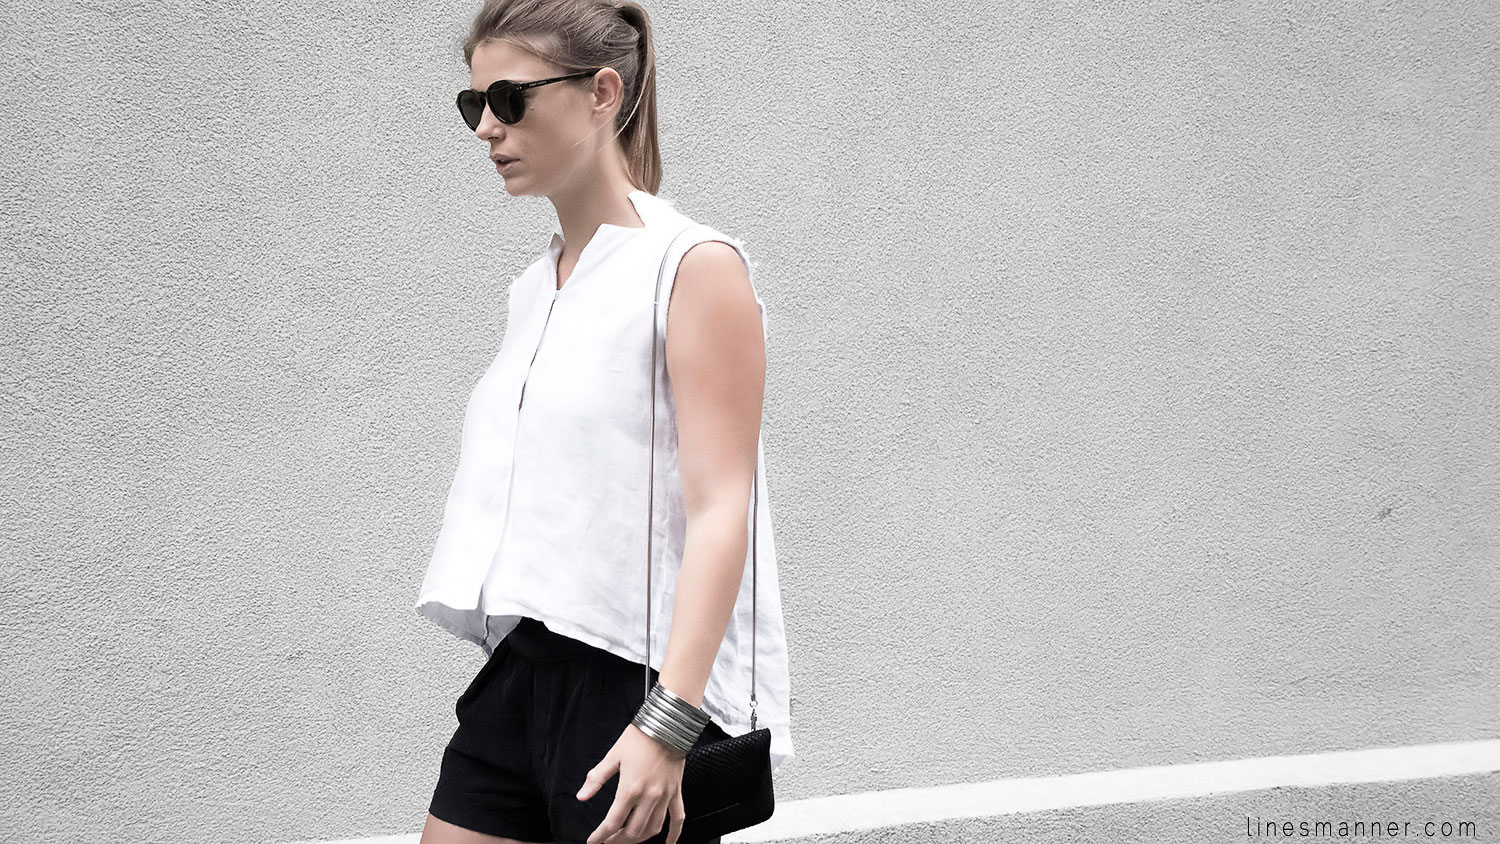 Lines-Manner-Black_and_white-Trend-Texture-Style-Timeless-Combo-Relaxed_Sophistication-Contemporary-Tendancies-Elegant-Balancing-Effortless-Minimalist-Fashion-Simplicity-Less_is_more-Details-5